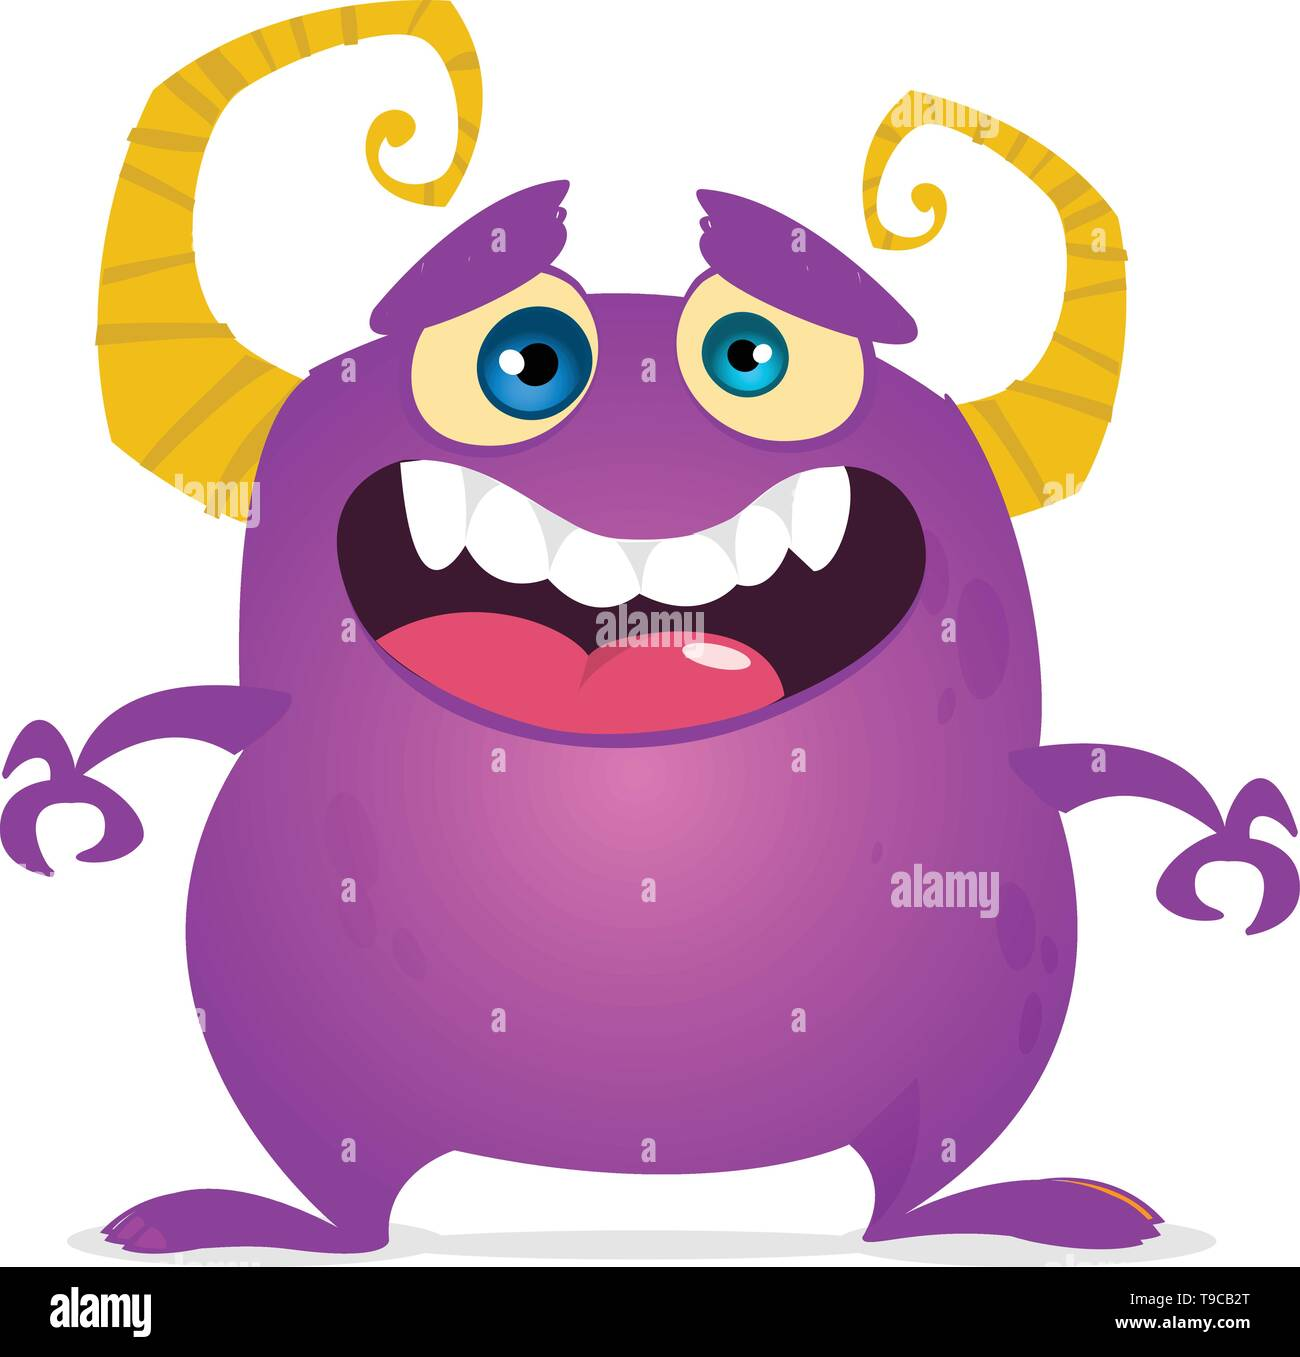 Funny cartoon monster laughing. Vector purple monster illustration. Halloween design - Stock Image